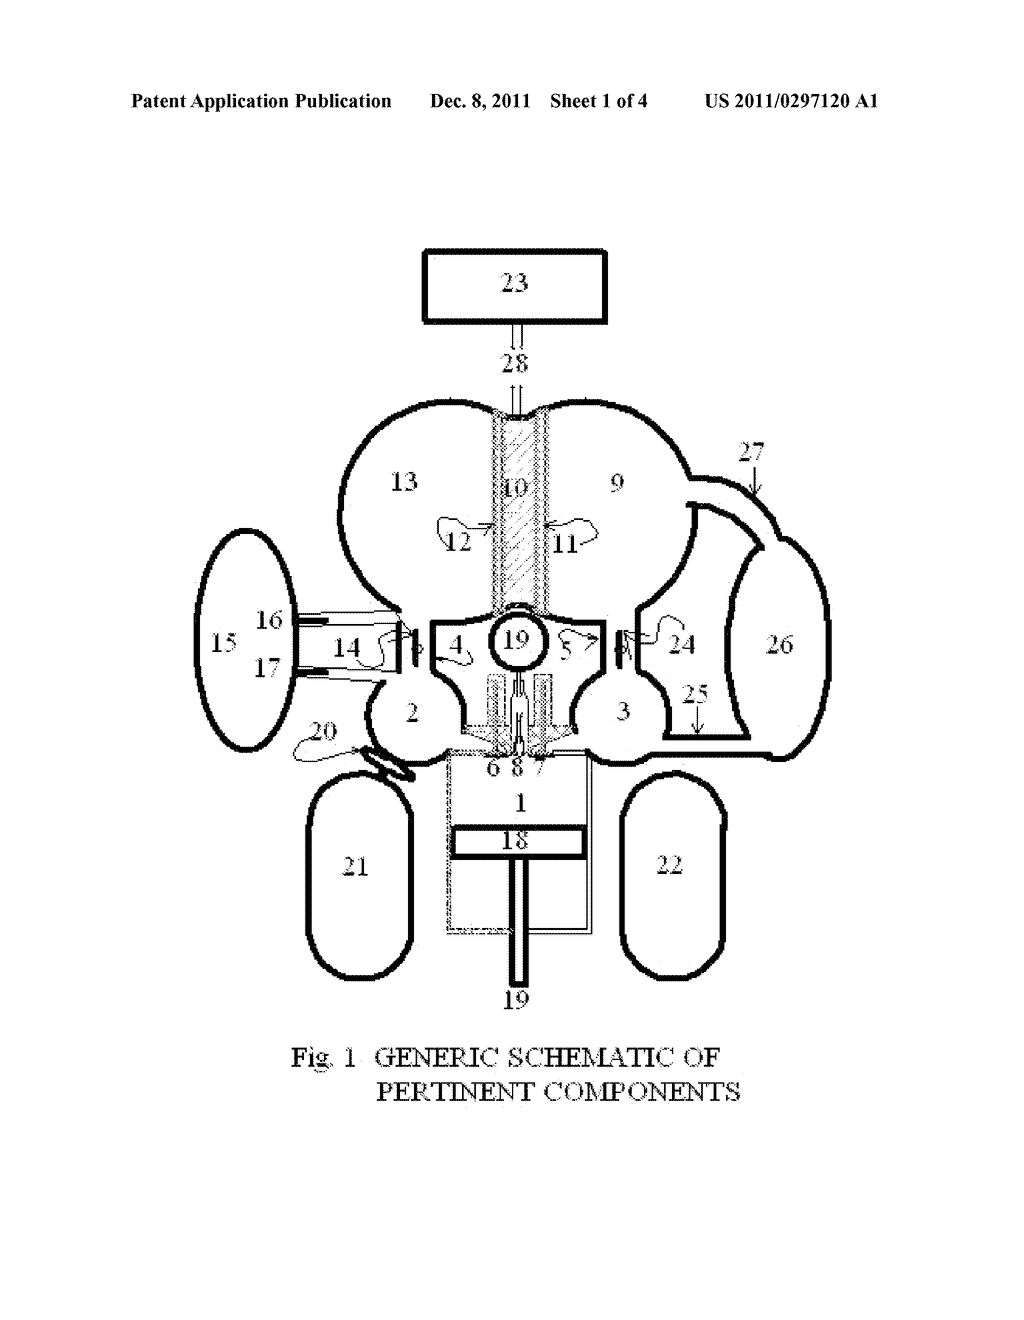 Rakh Cycle Boilerless Airless Hydrogen Fueled Closed Engine Diagram Steam Schematic And Image 02